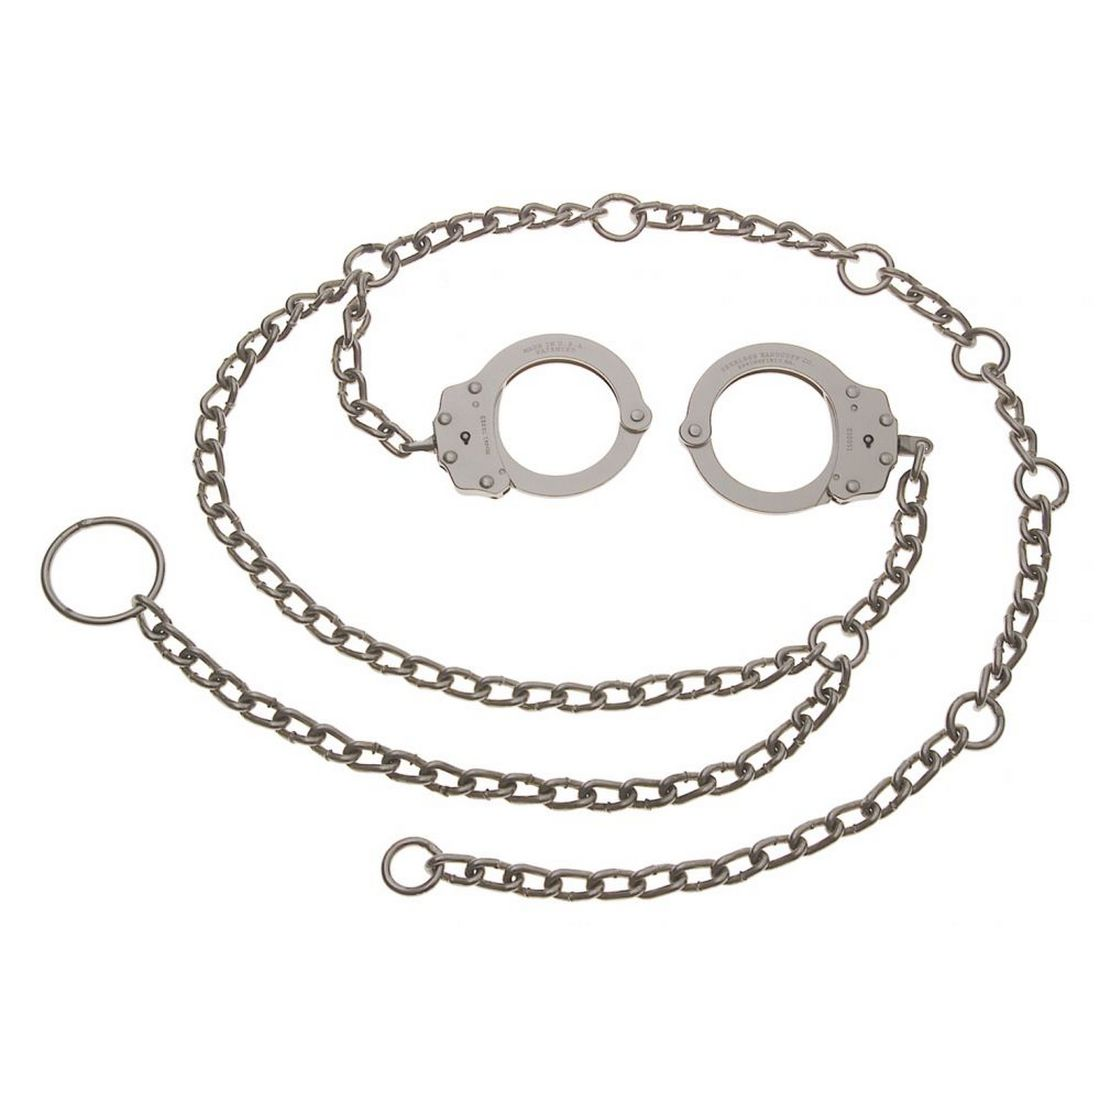 Peerless 7002C Waist Chain - Handcuffs at Hip